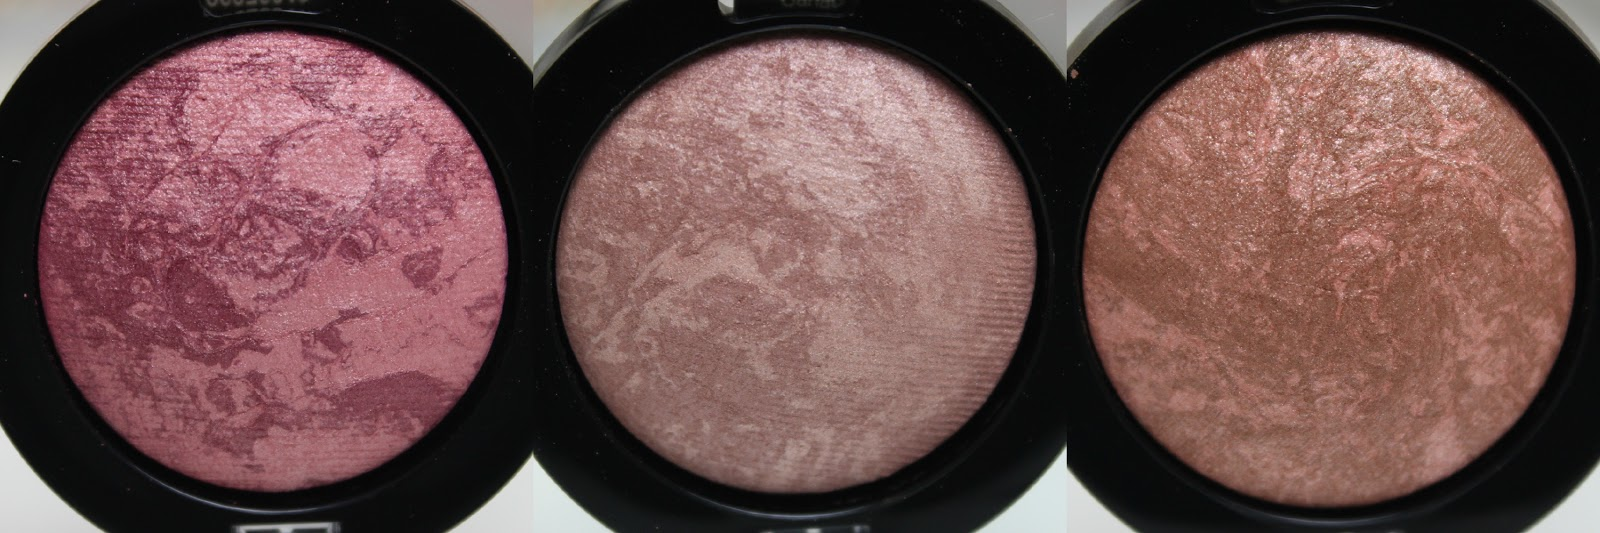 A picture of Max Factor Creme Puff Blush in 30 Gorgeous Berries, 10 Nude Mauve, 25 Alluring Rose